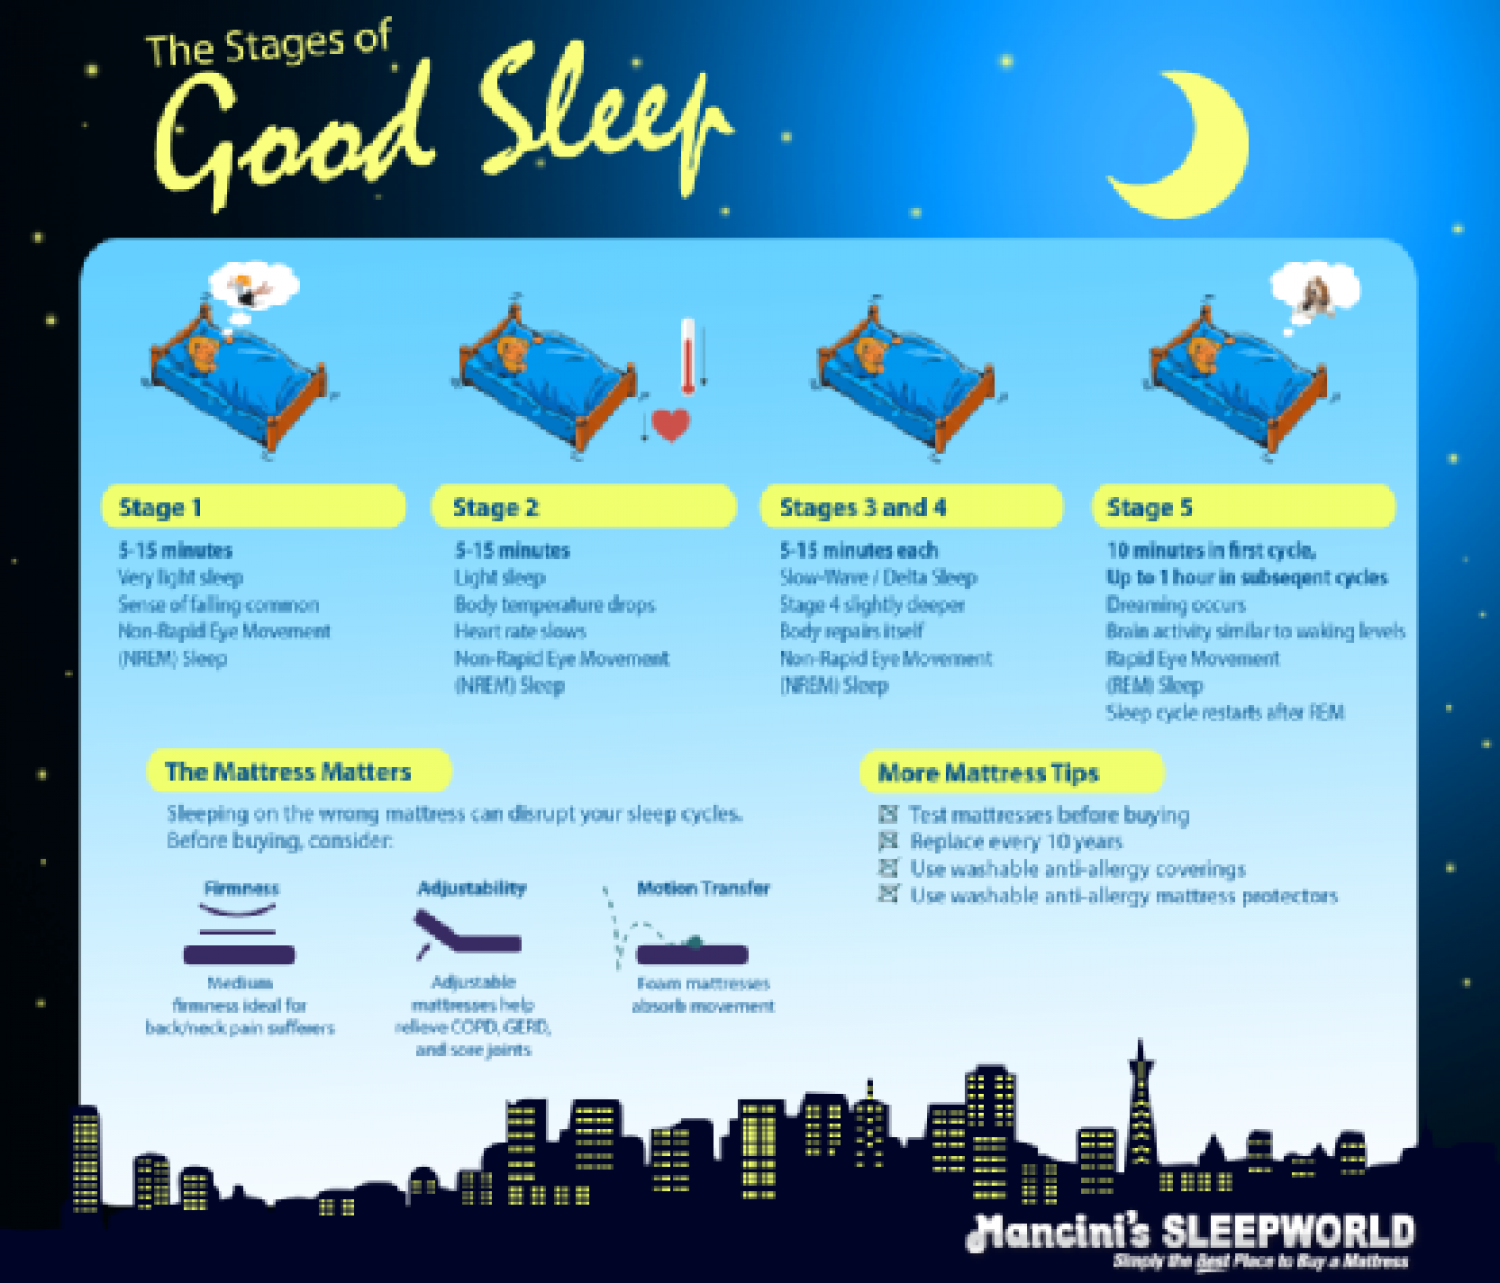 The Stages of Good Sleep Infographic